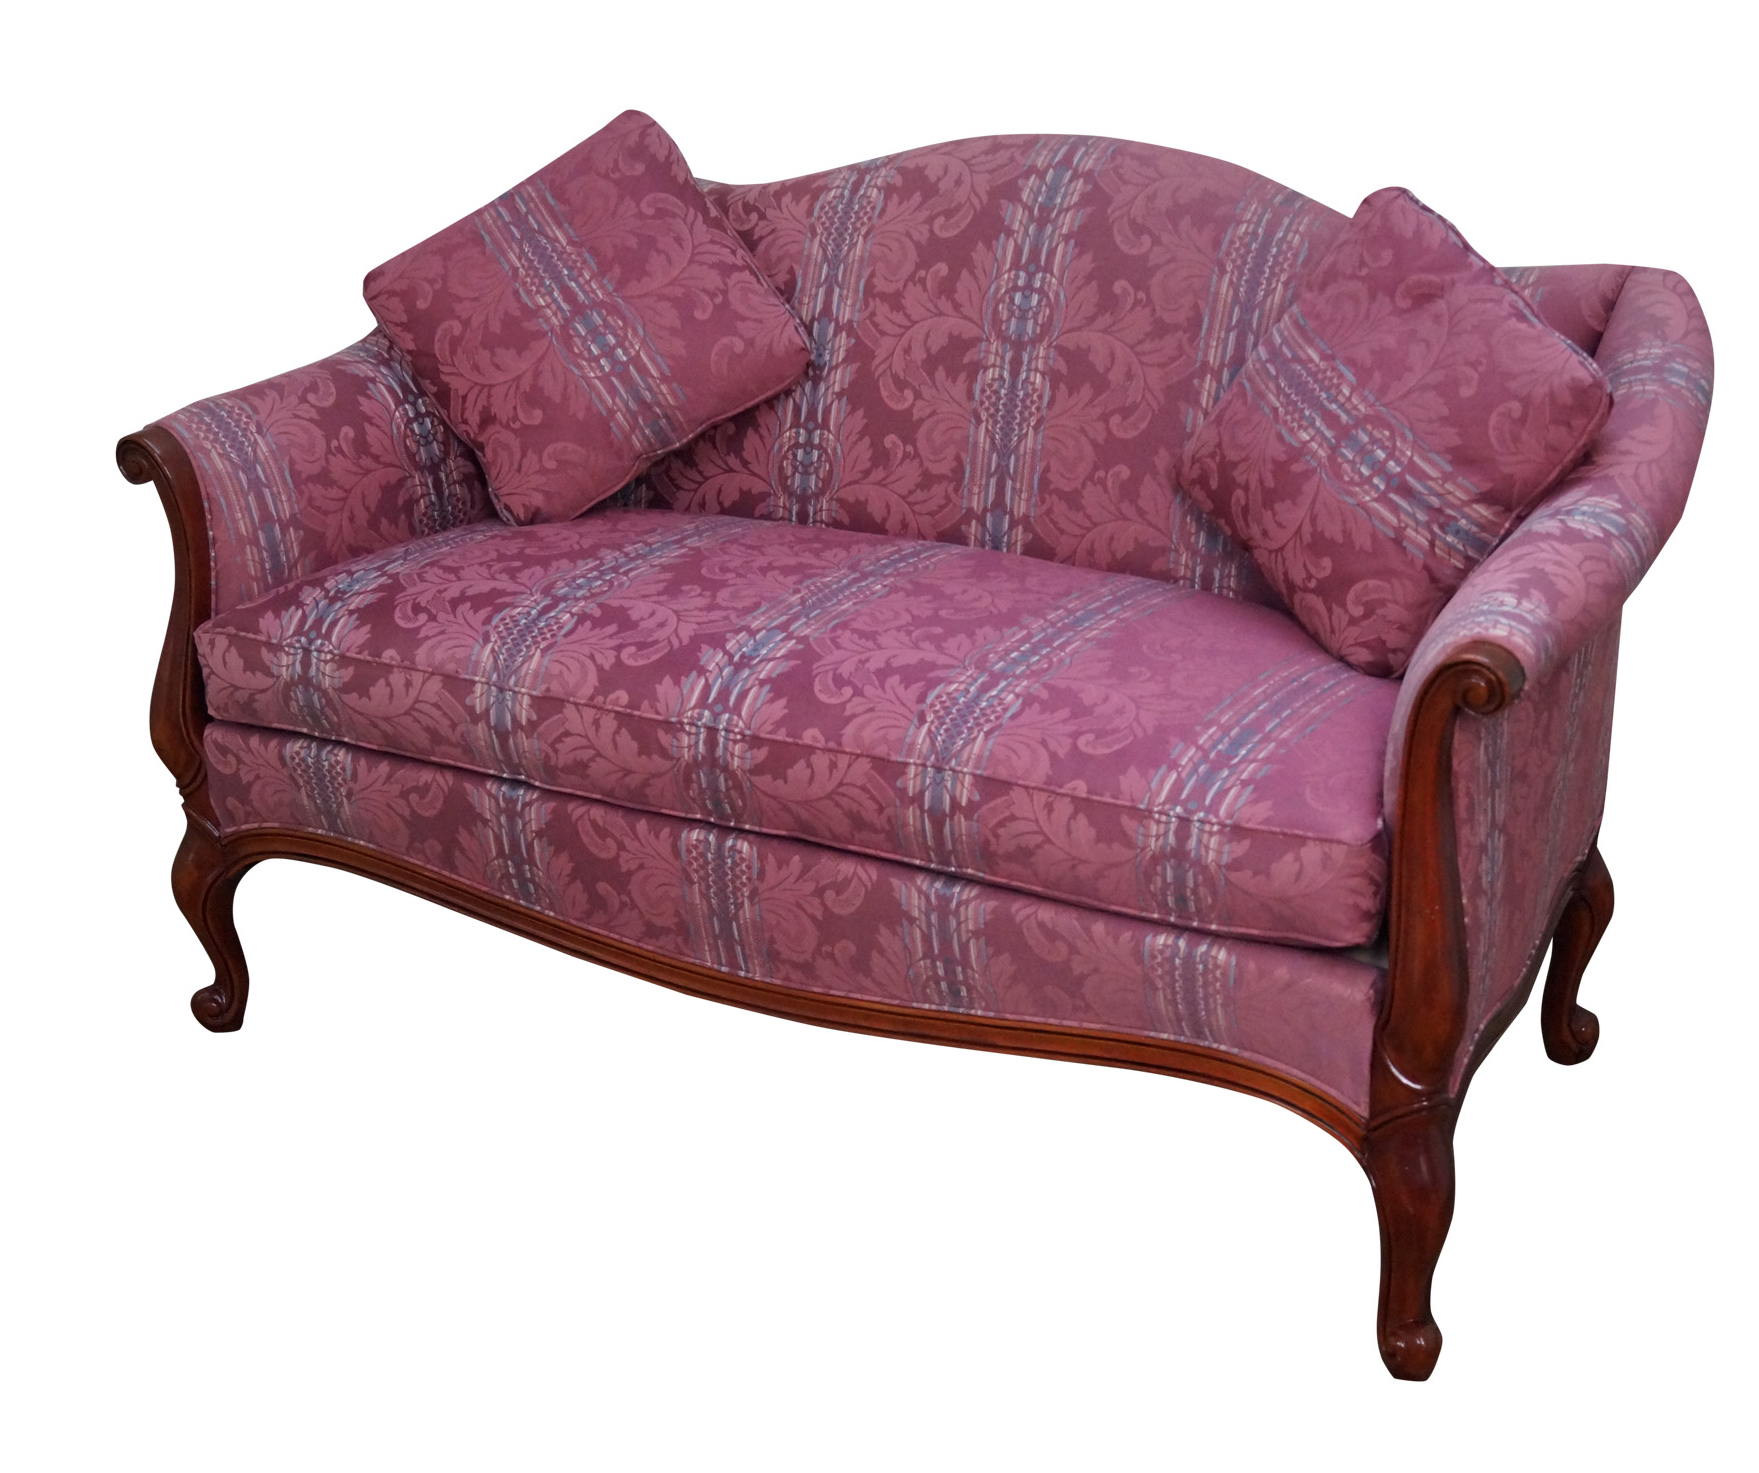 Hickory Chair French Mahogany Frame Loveseat